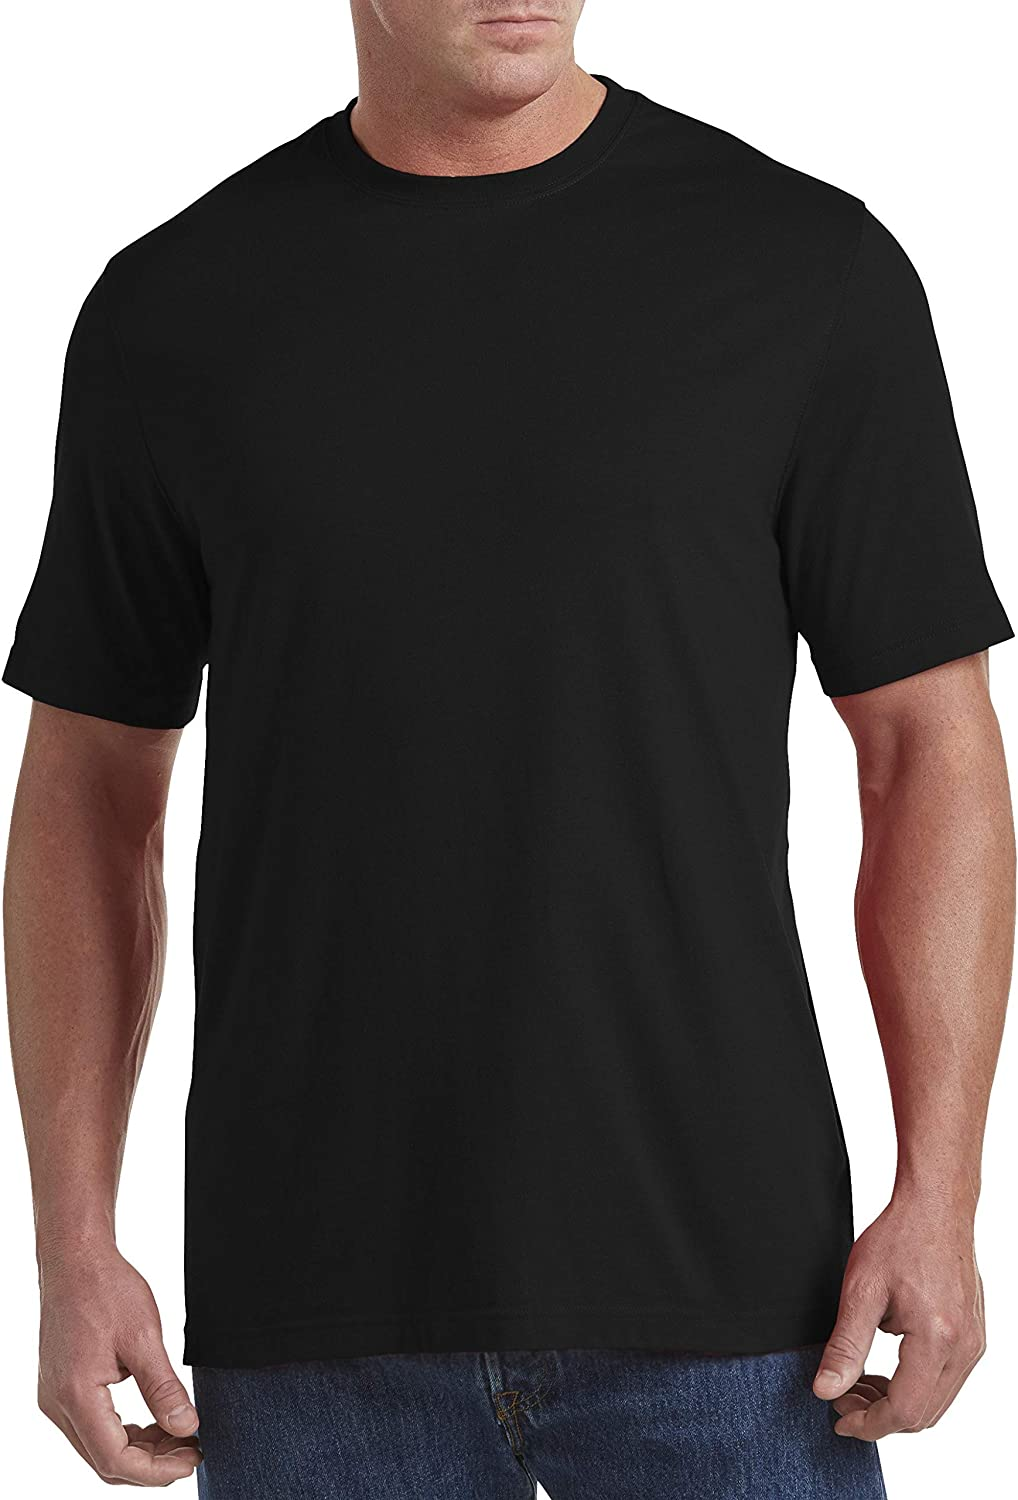 Harbor Bay by DXL Big and Tall Wicking No Pocket T-Shirt